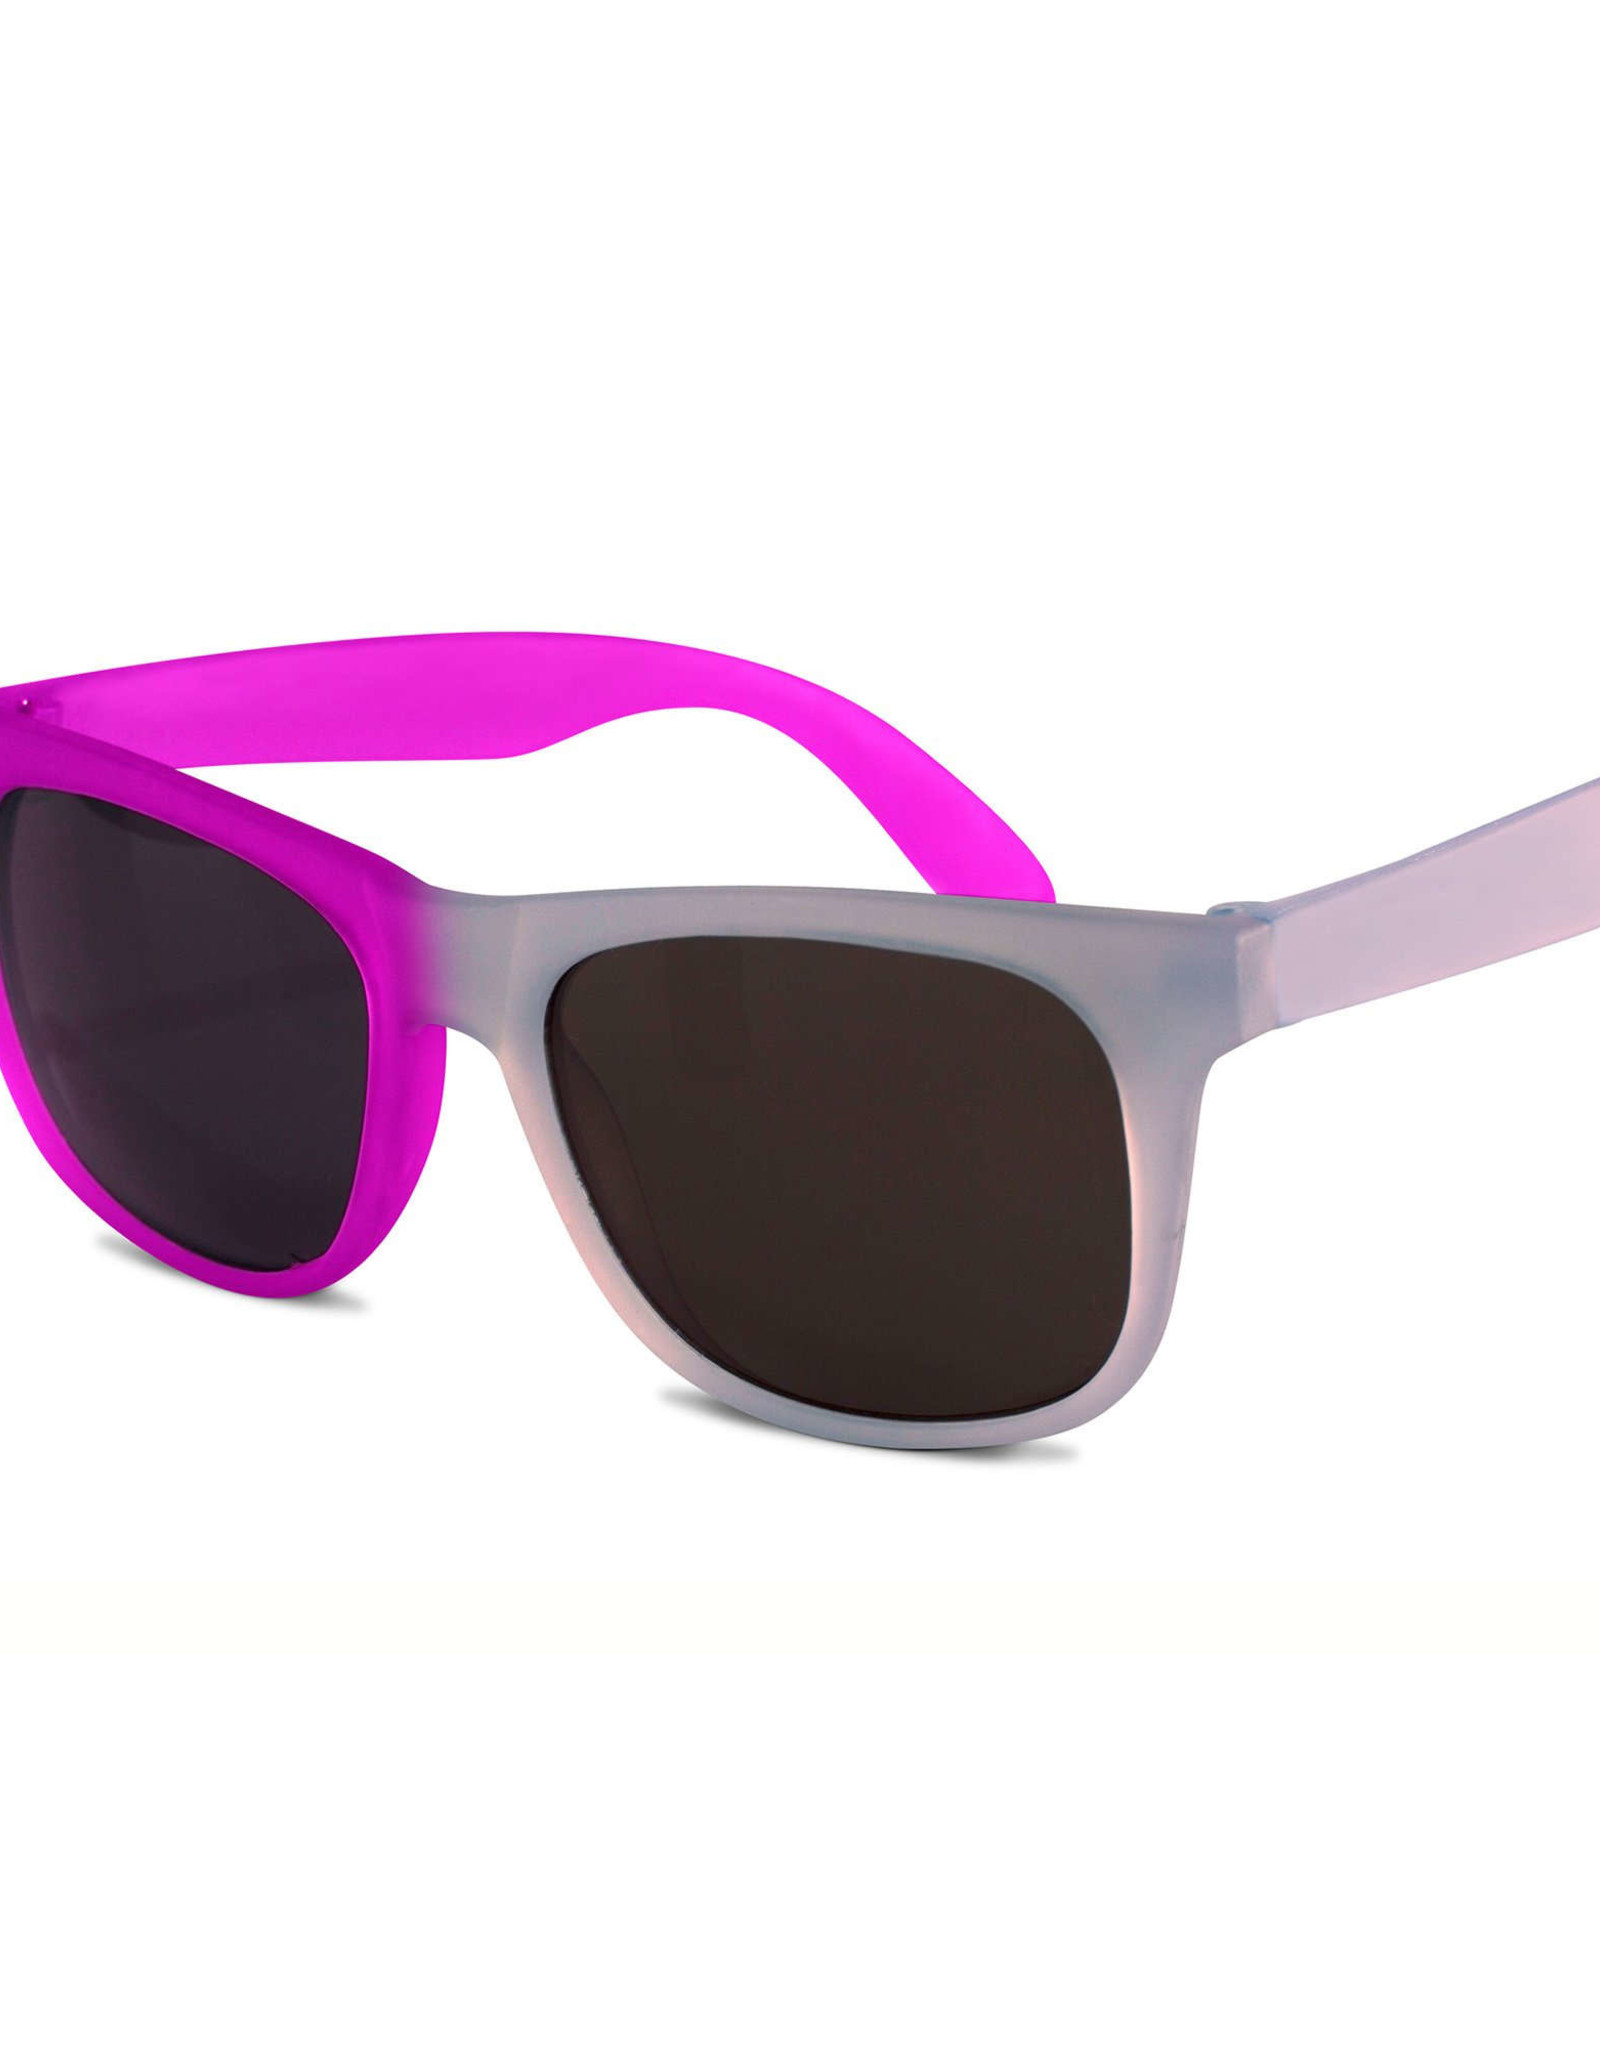 Real Shades Unbreakable Color Changing Sunglasses Blue Purple 2+